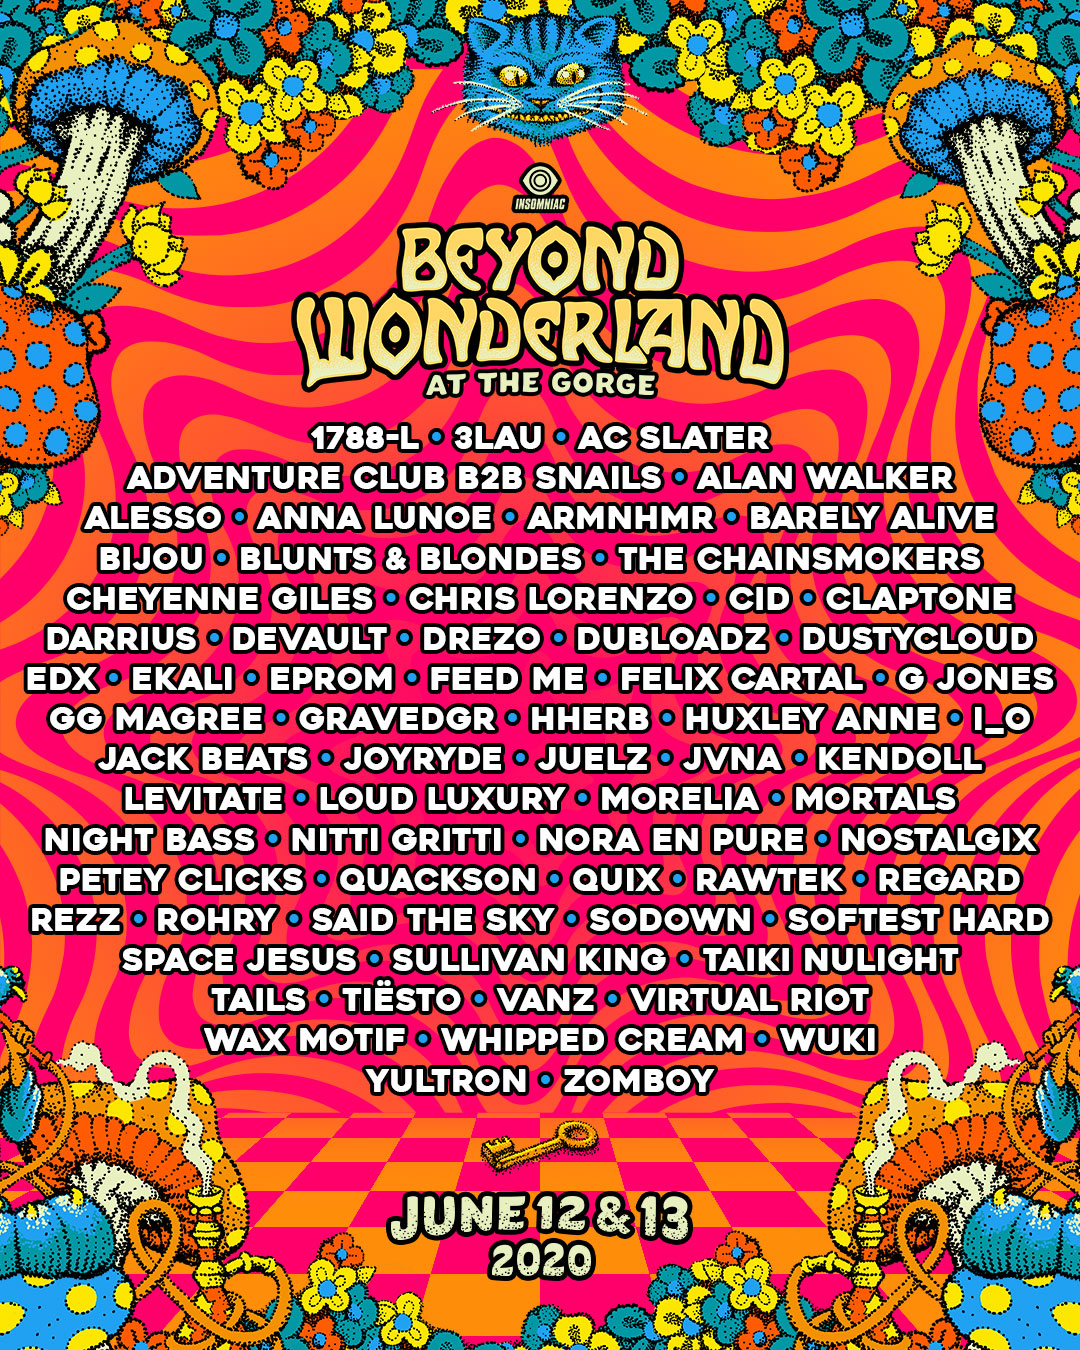 2020 Beyond Wonderland at The Gorge lineup